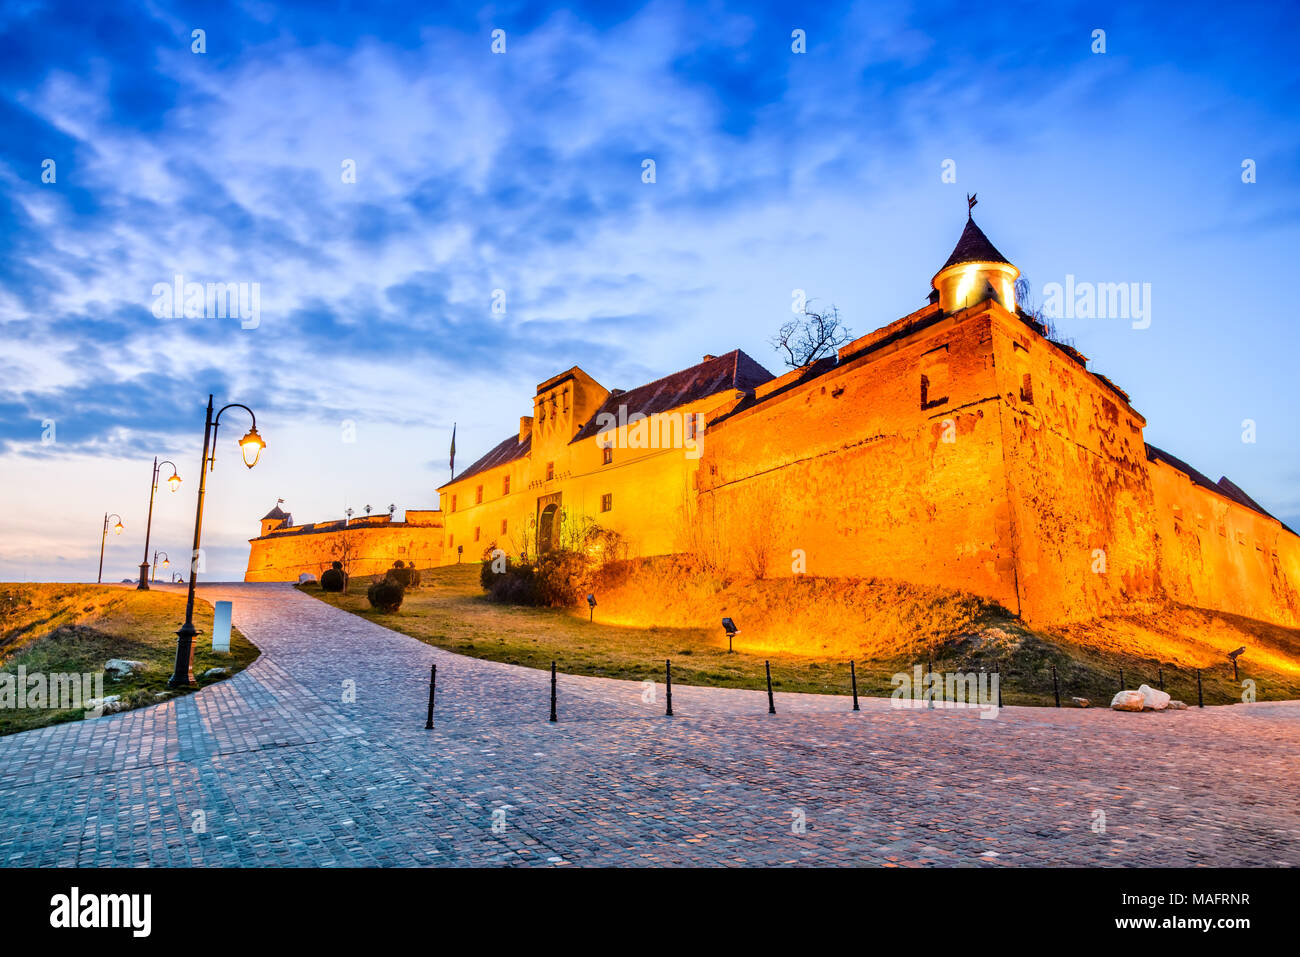 Brasov, Romania - The Citadel. Stunning twilight HDR image with medieval hilltop fortress of Corona medieval city in Transylvania. - Stock Image